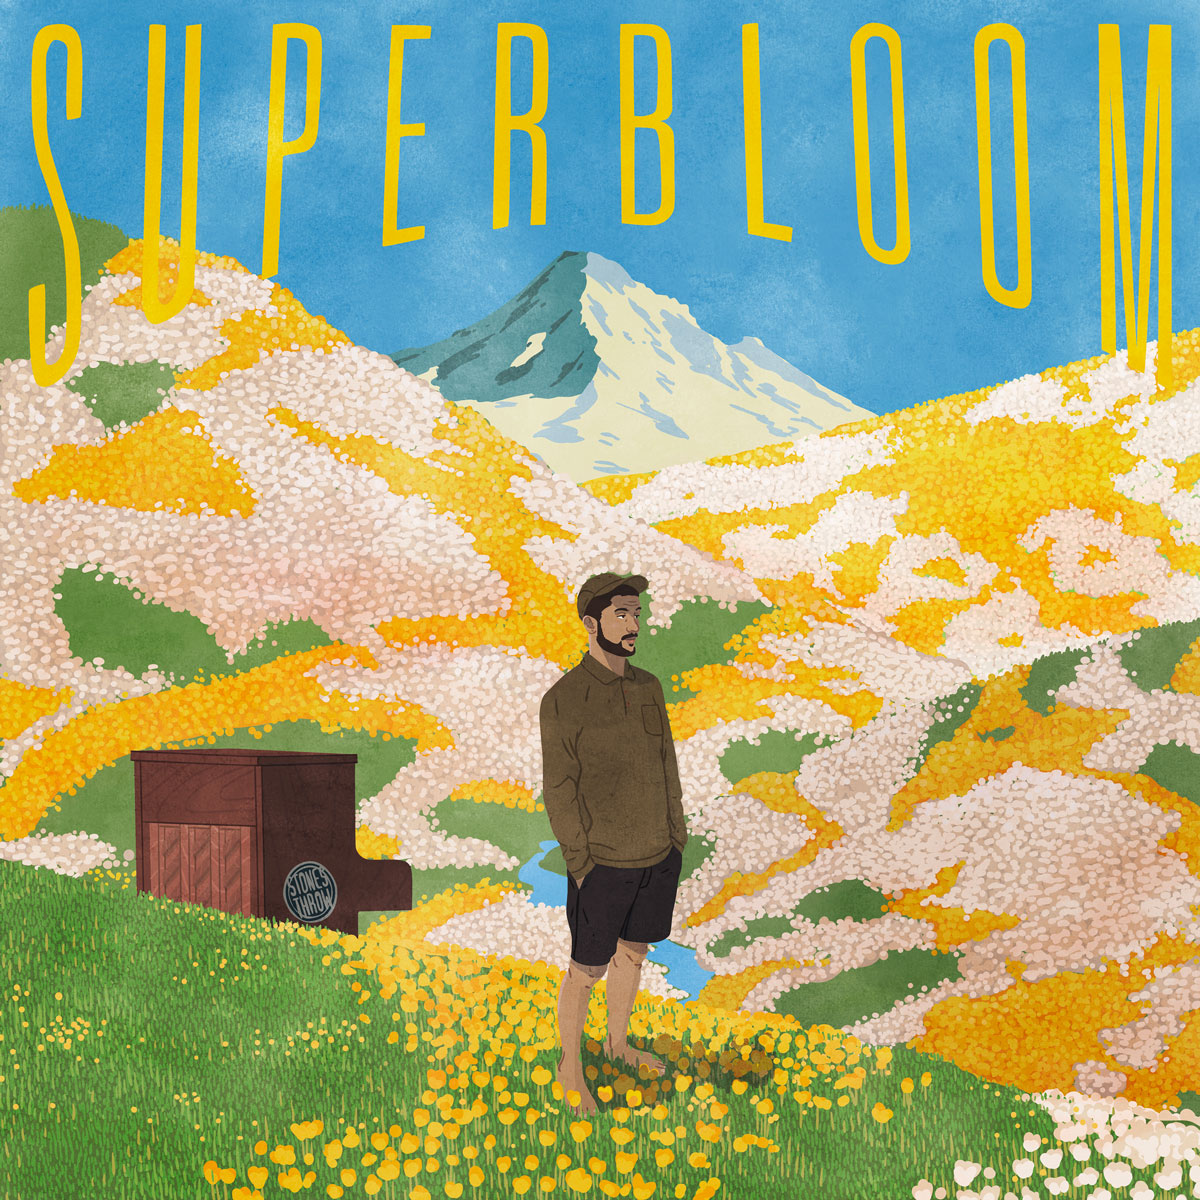 Kiefer_Superbloom_digital-1200.jpg